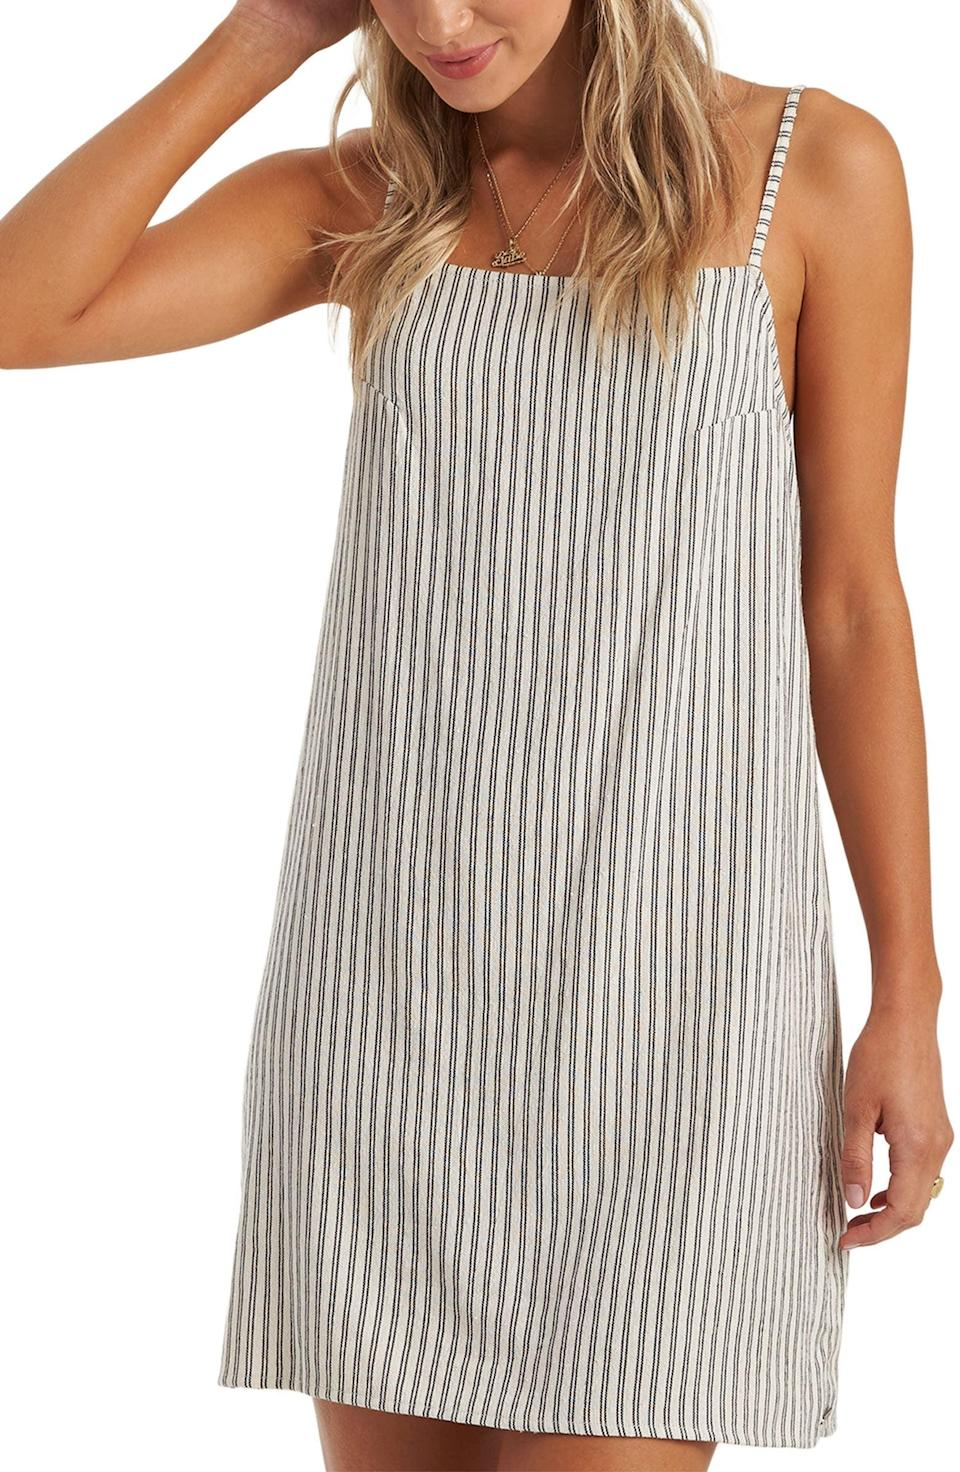 <p>You'll look instantly put-together in this <span>Billabong Daydreamer Yarn Dye Stripe Sundress</span> ($21, originally $46).</p>